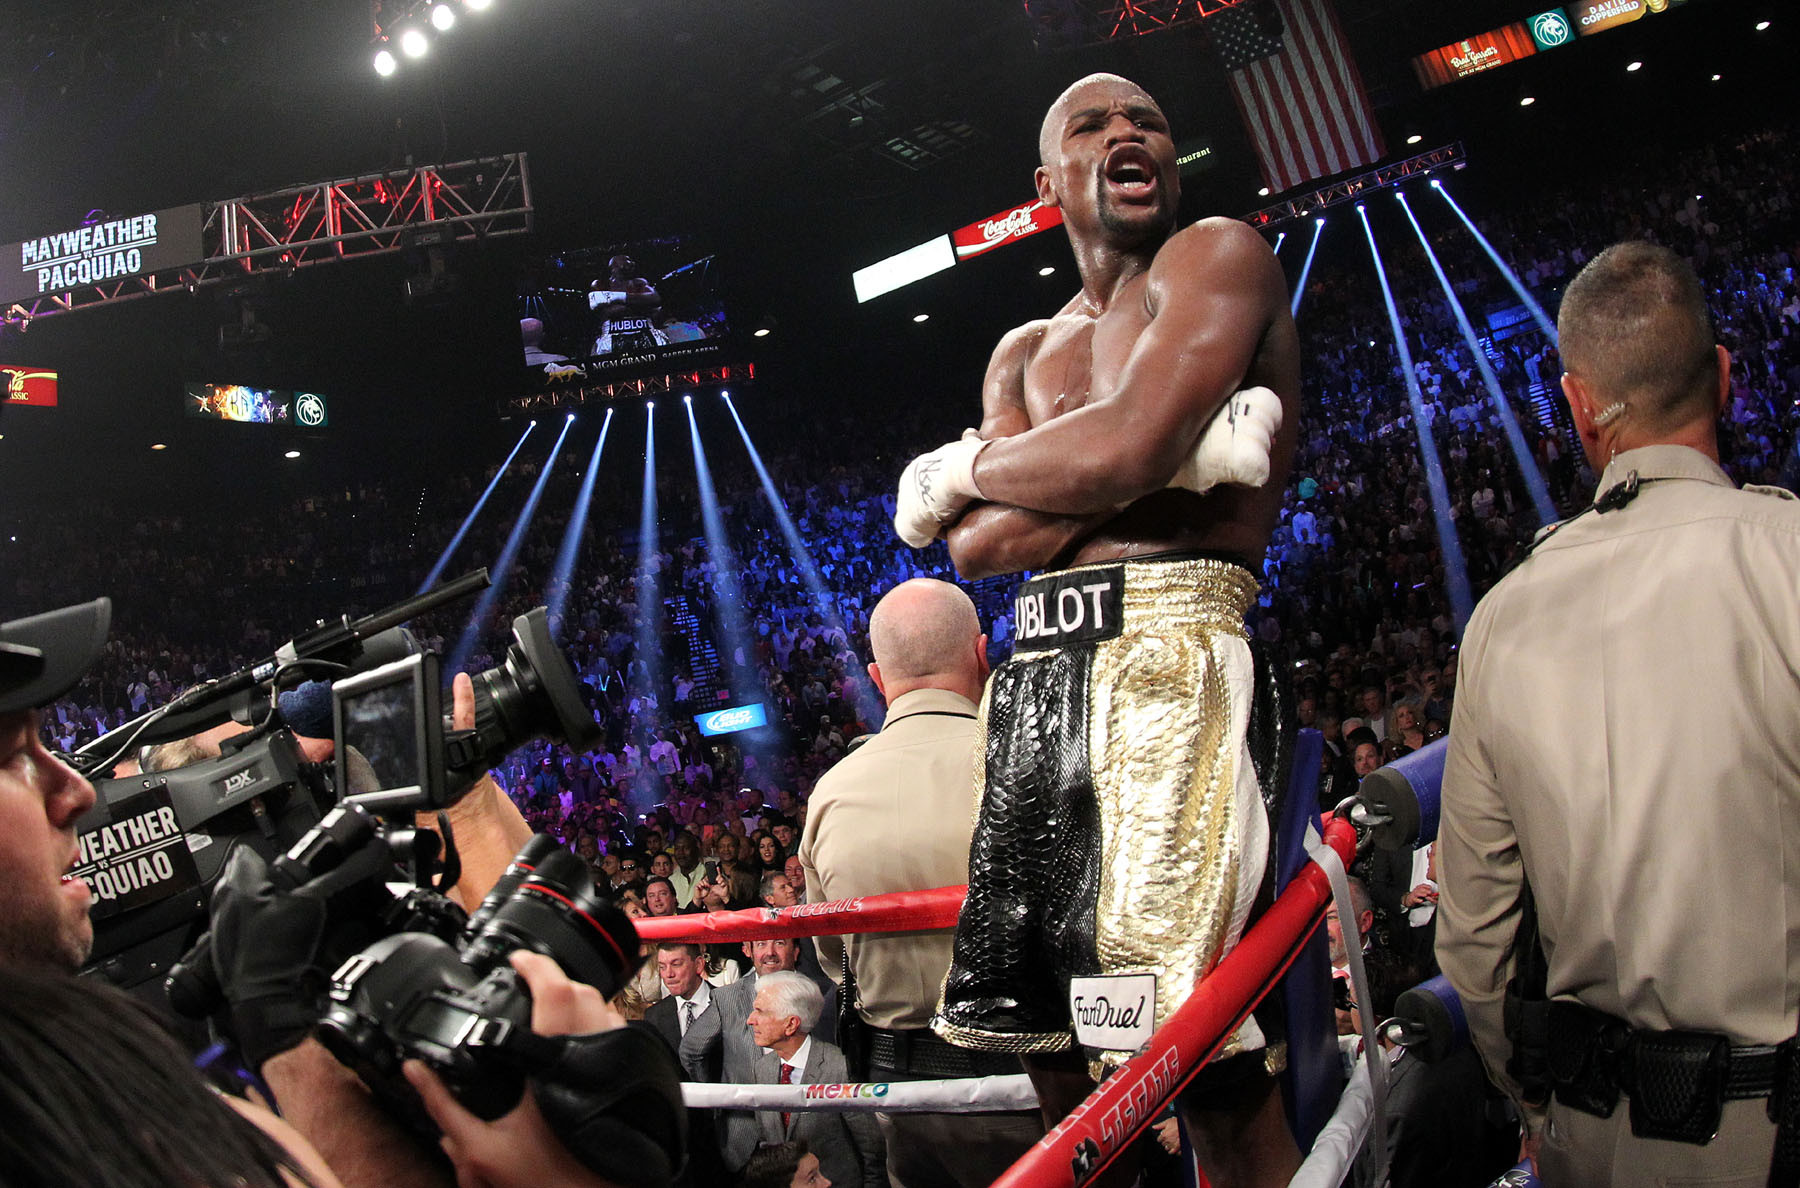 Floyd Mayweather and Jake Paul exchange insults after Mayweather reveals he wants exhibitions with Jake and 50 Cent following next bout against Logan Paul